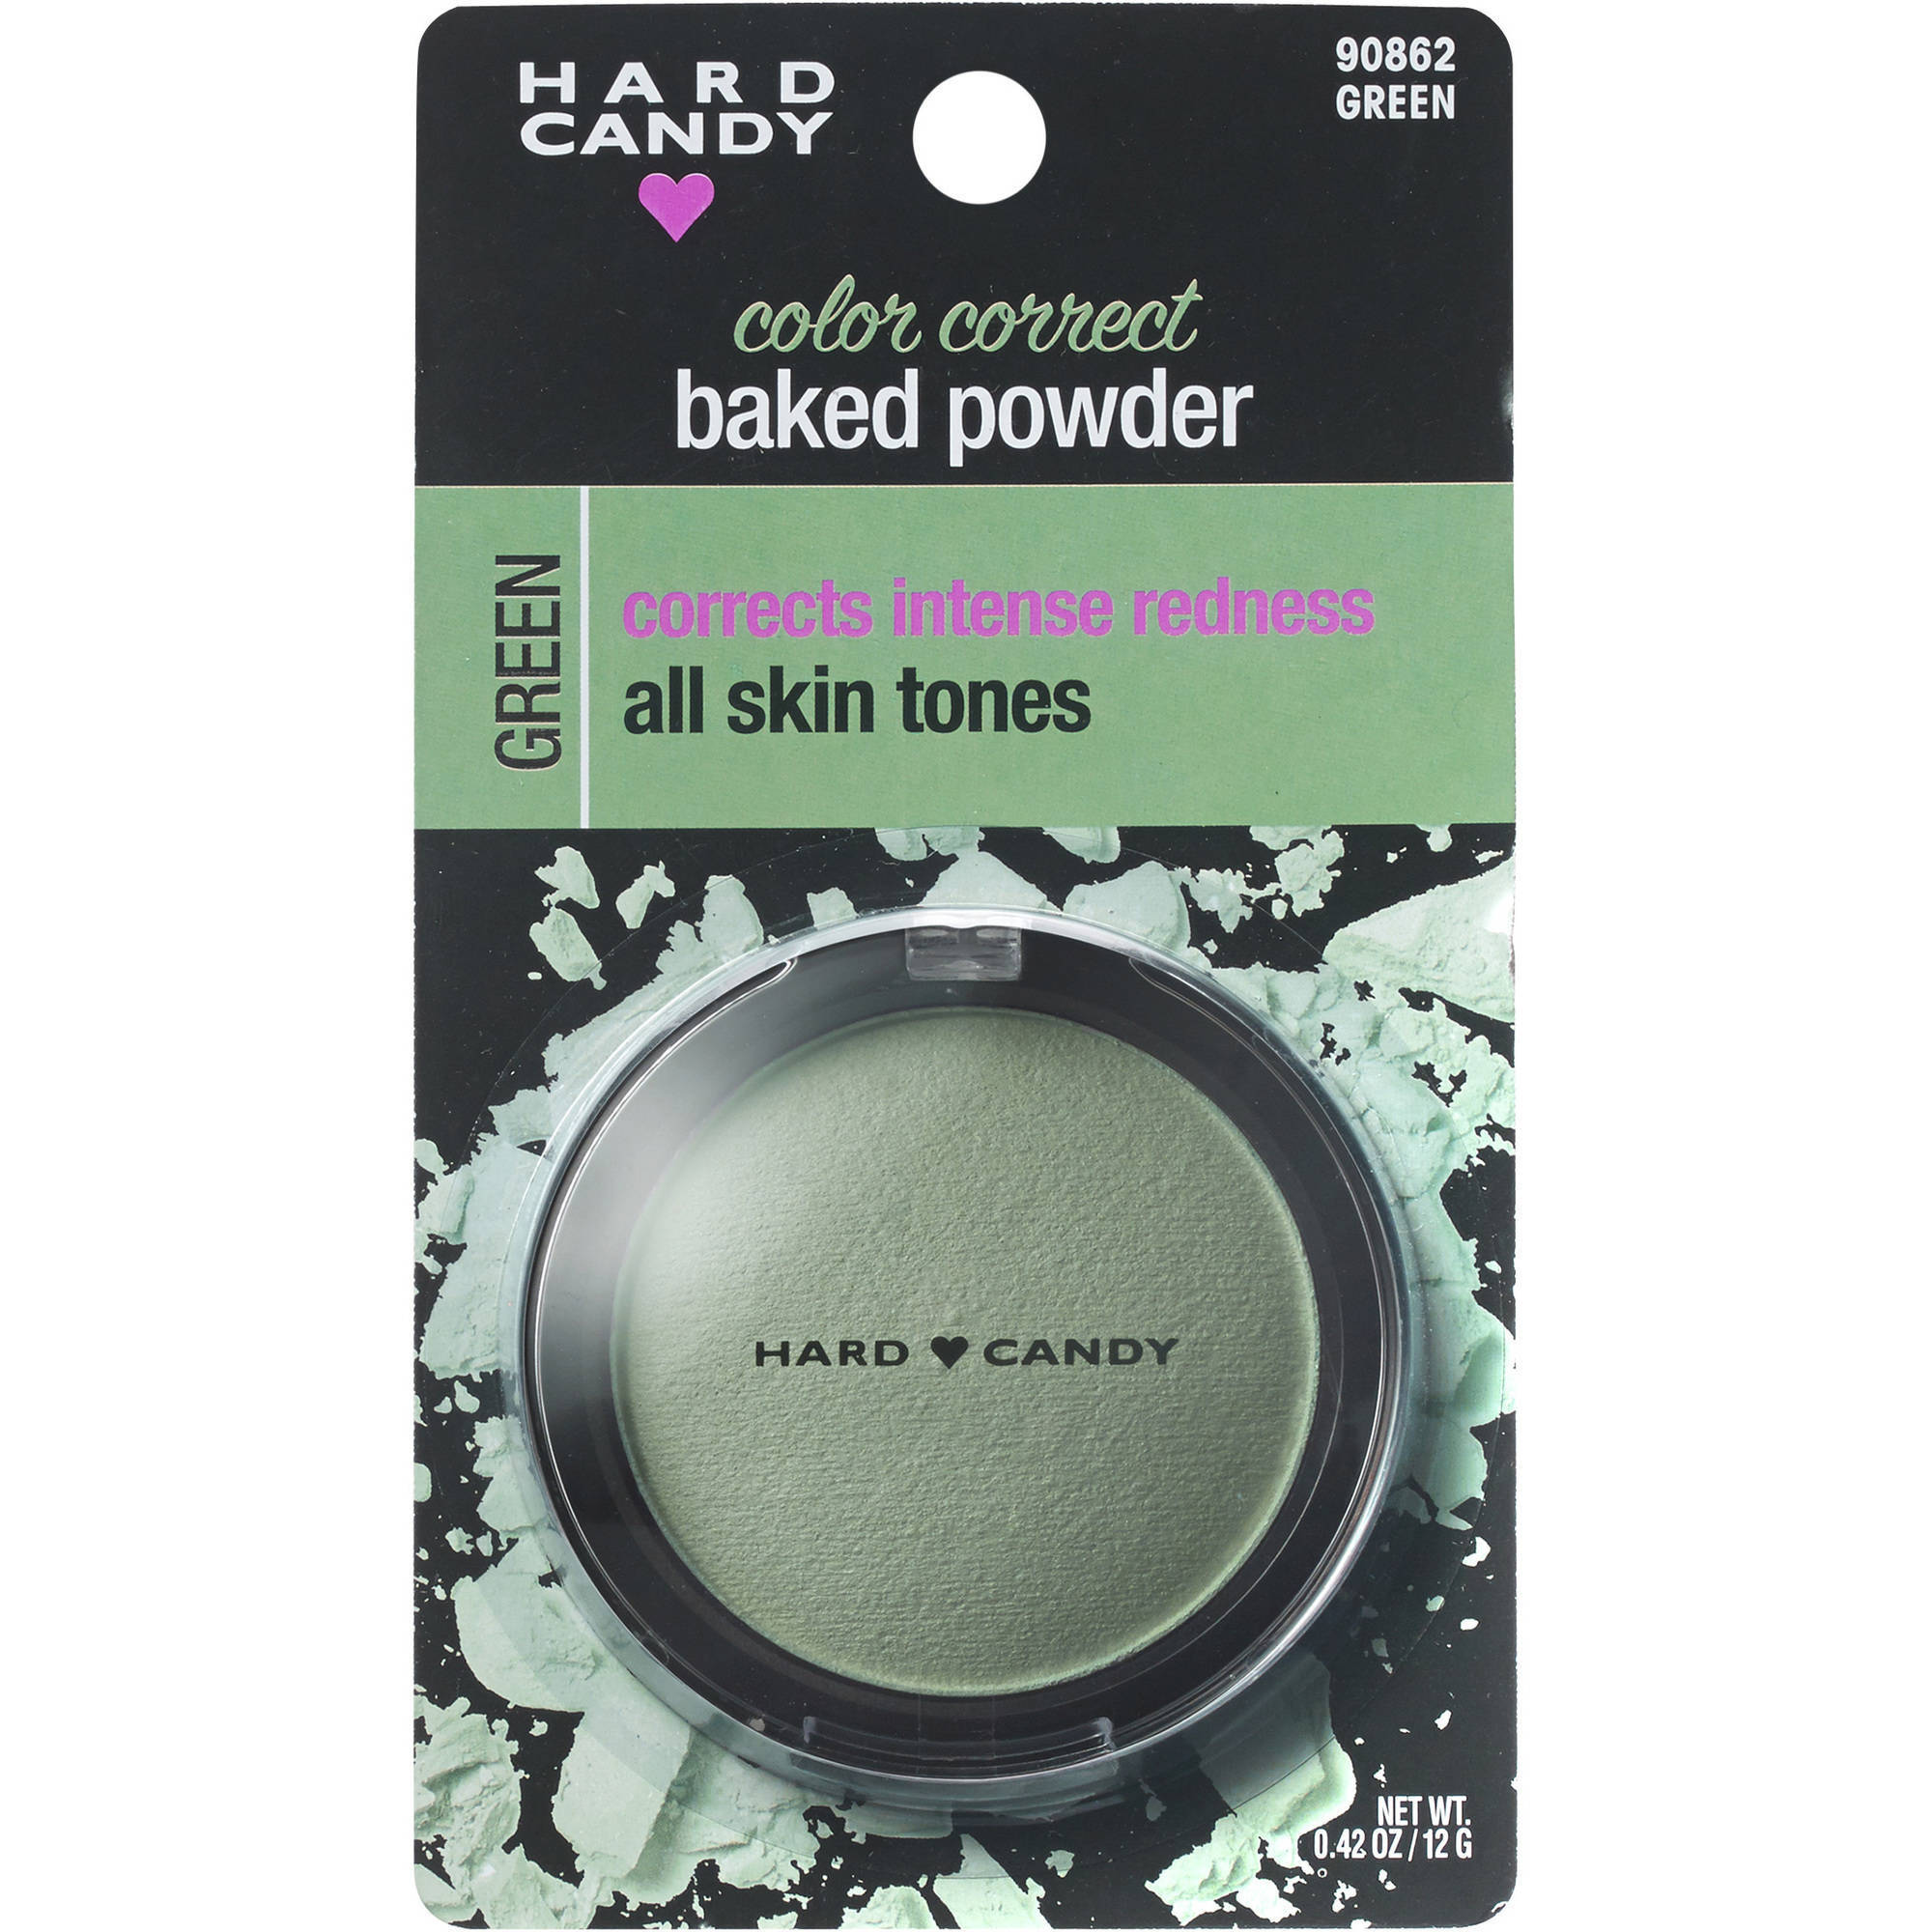 Hard Candy Color Correct Baked Powder, 0862 Green, .42 oz